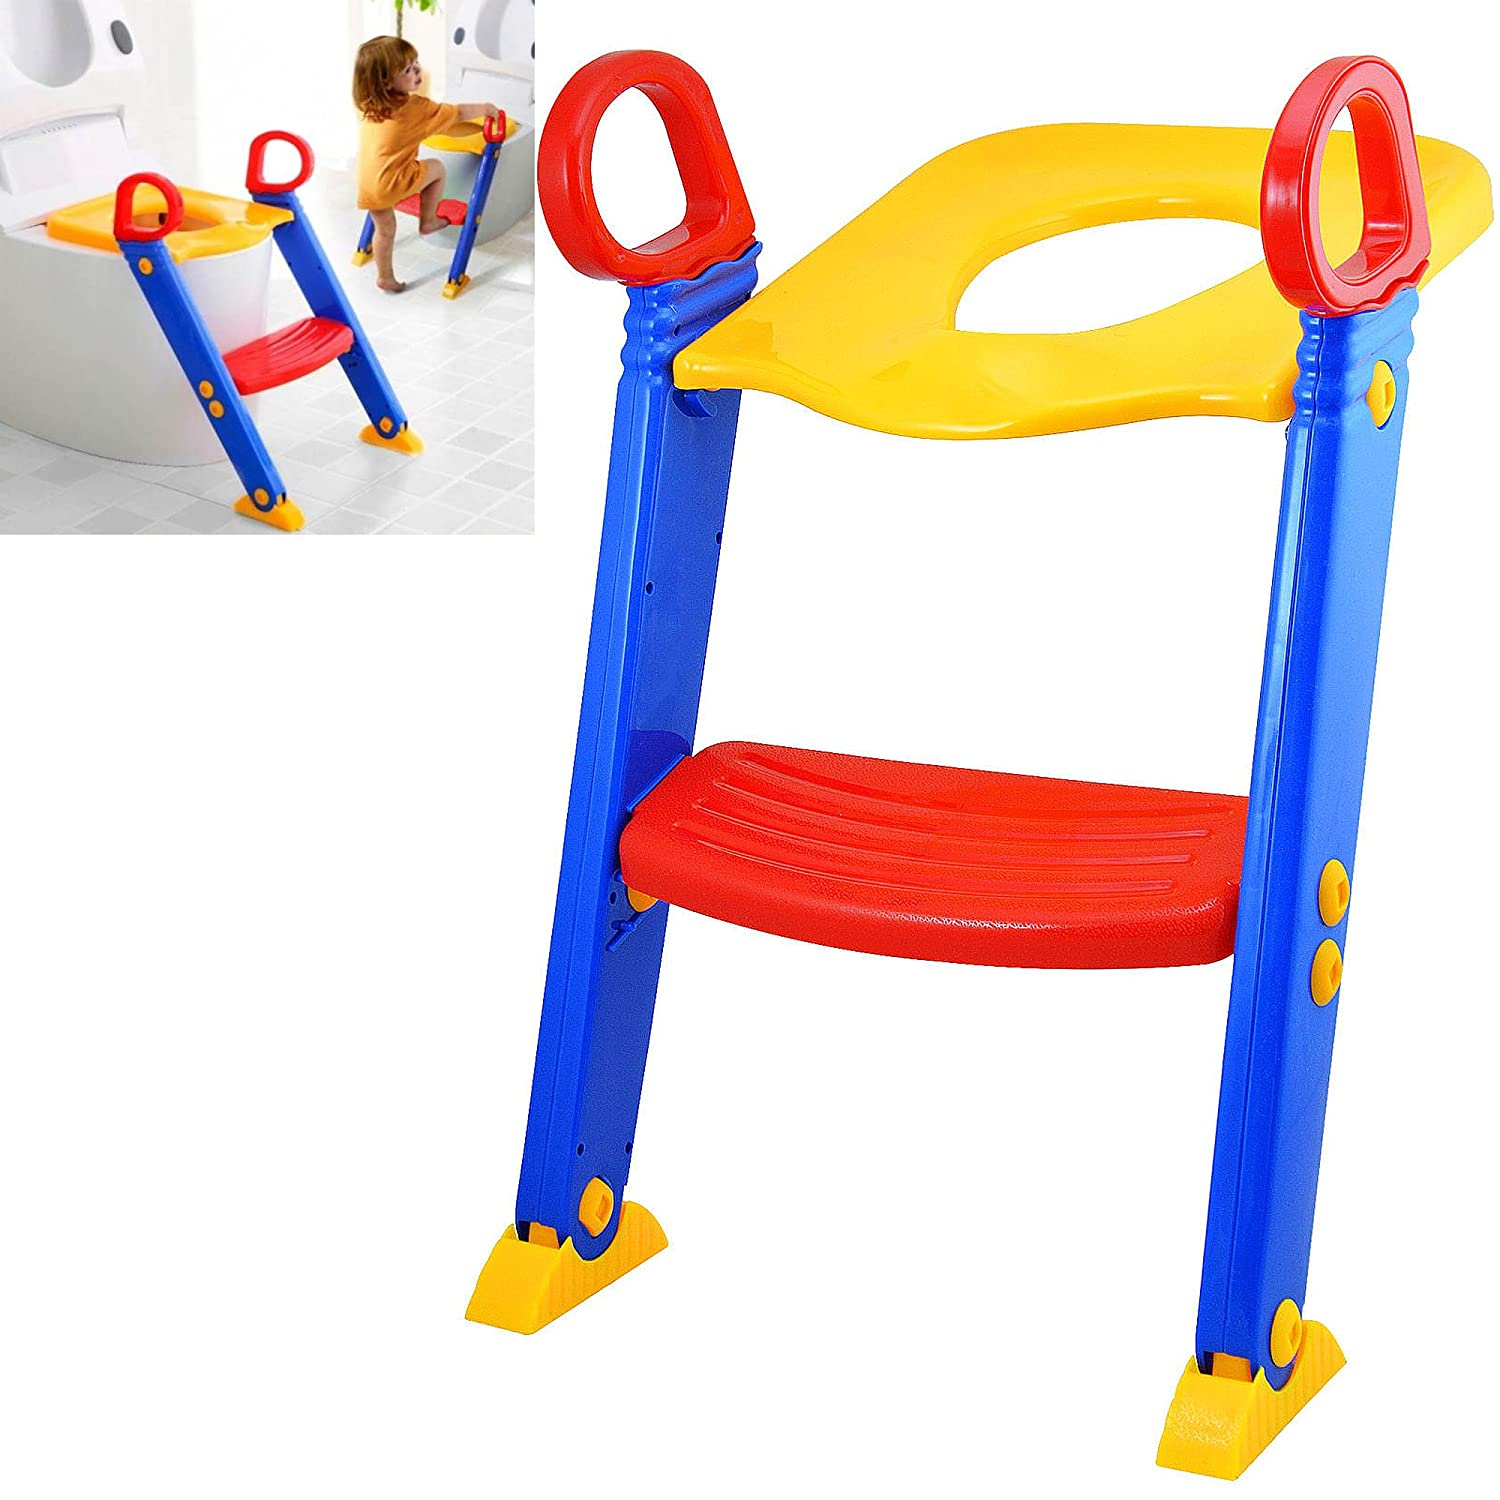 BABY TODDLER SAFETY POTTY TRAINING LADDER STEP TOILET SEAT LOO TRAINER SYSTEM UK Fusion